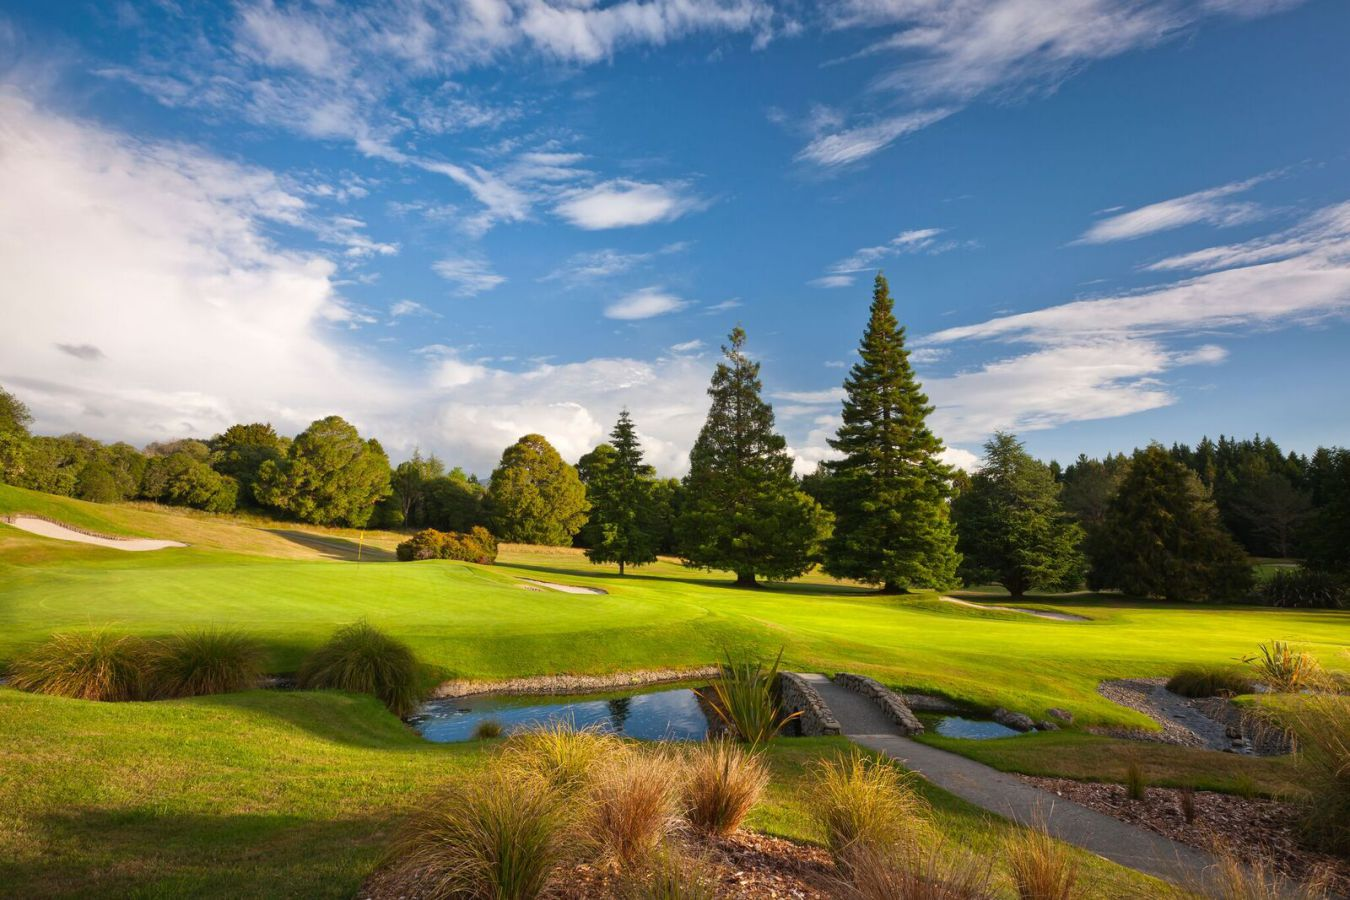 wairakei-sanctuary-internationa-golf-club-53